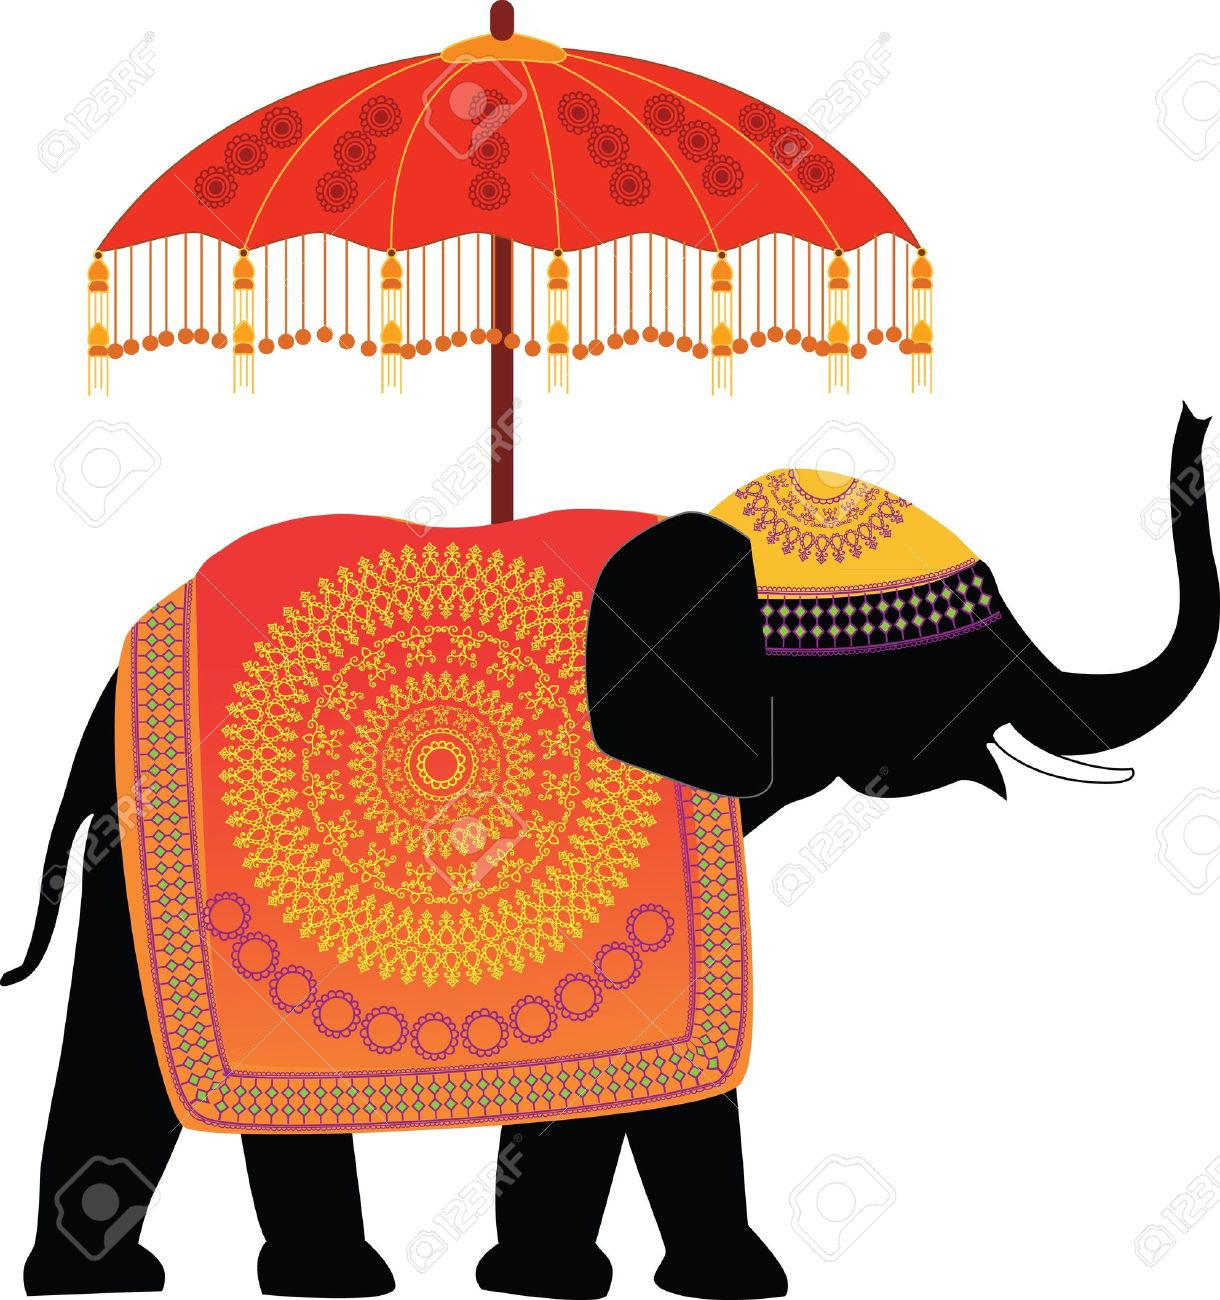 Decorated Indian Elephant with umbrella.